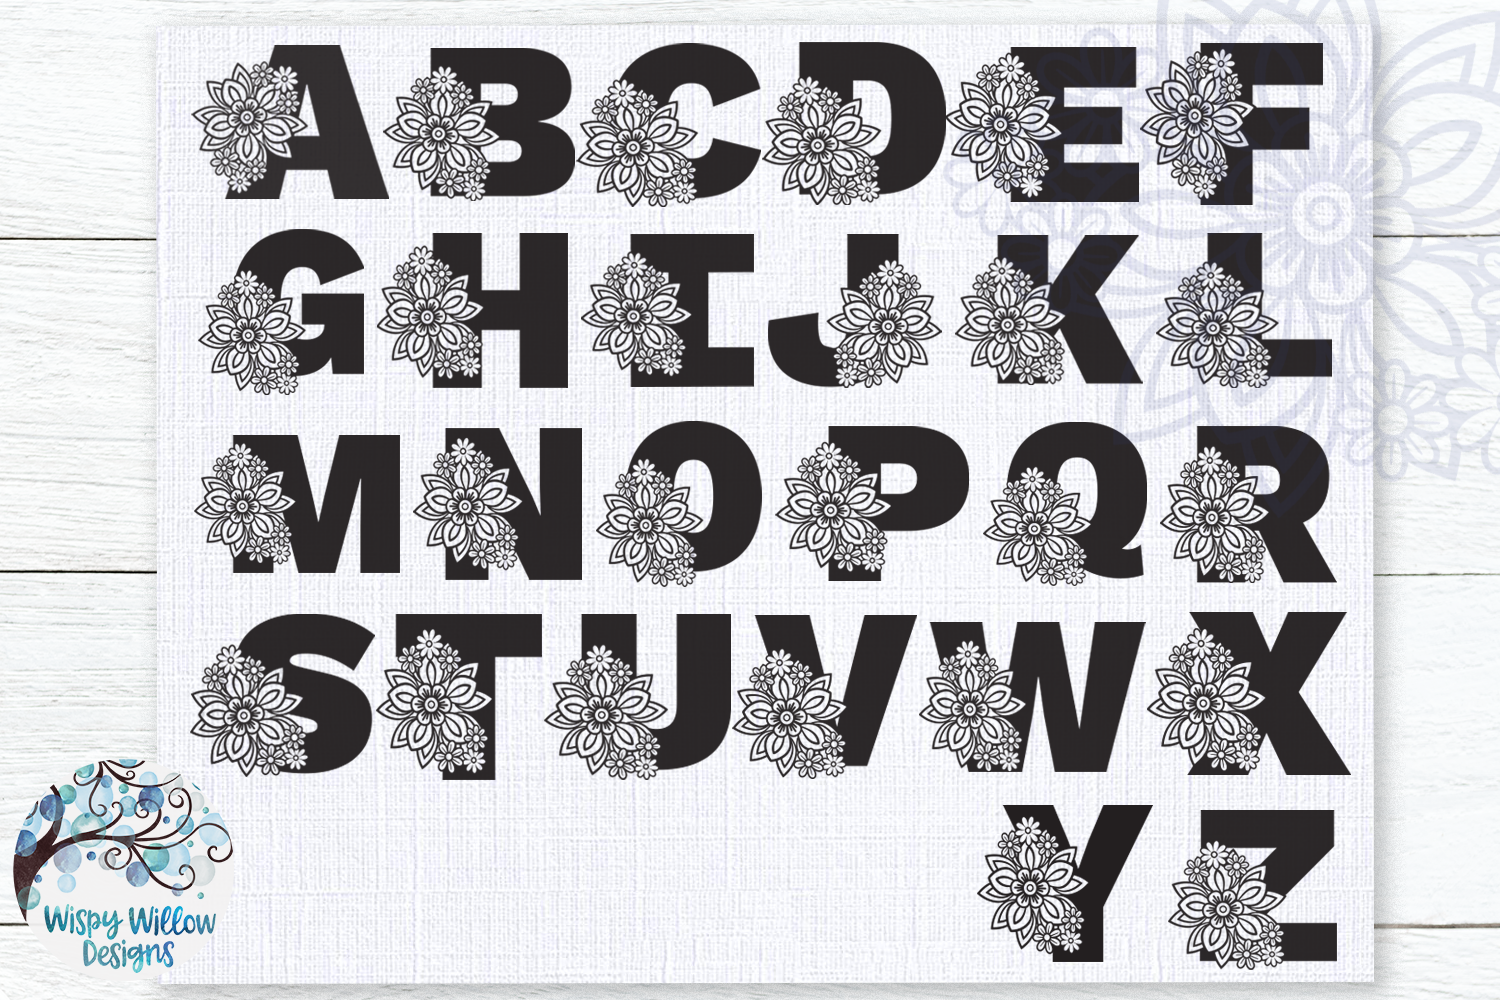 Floral Alphabet SVG Bundle | A to Z Floral Letters SVG example image 2